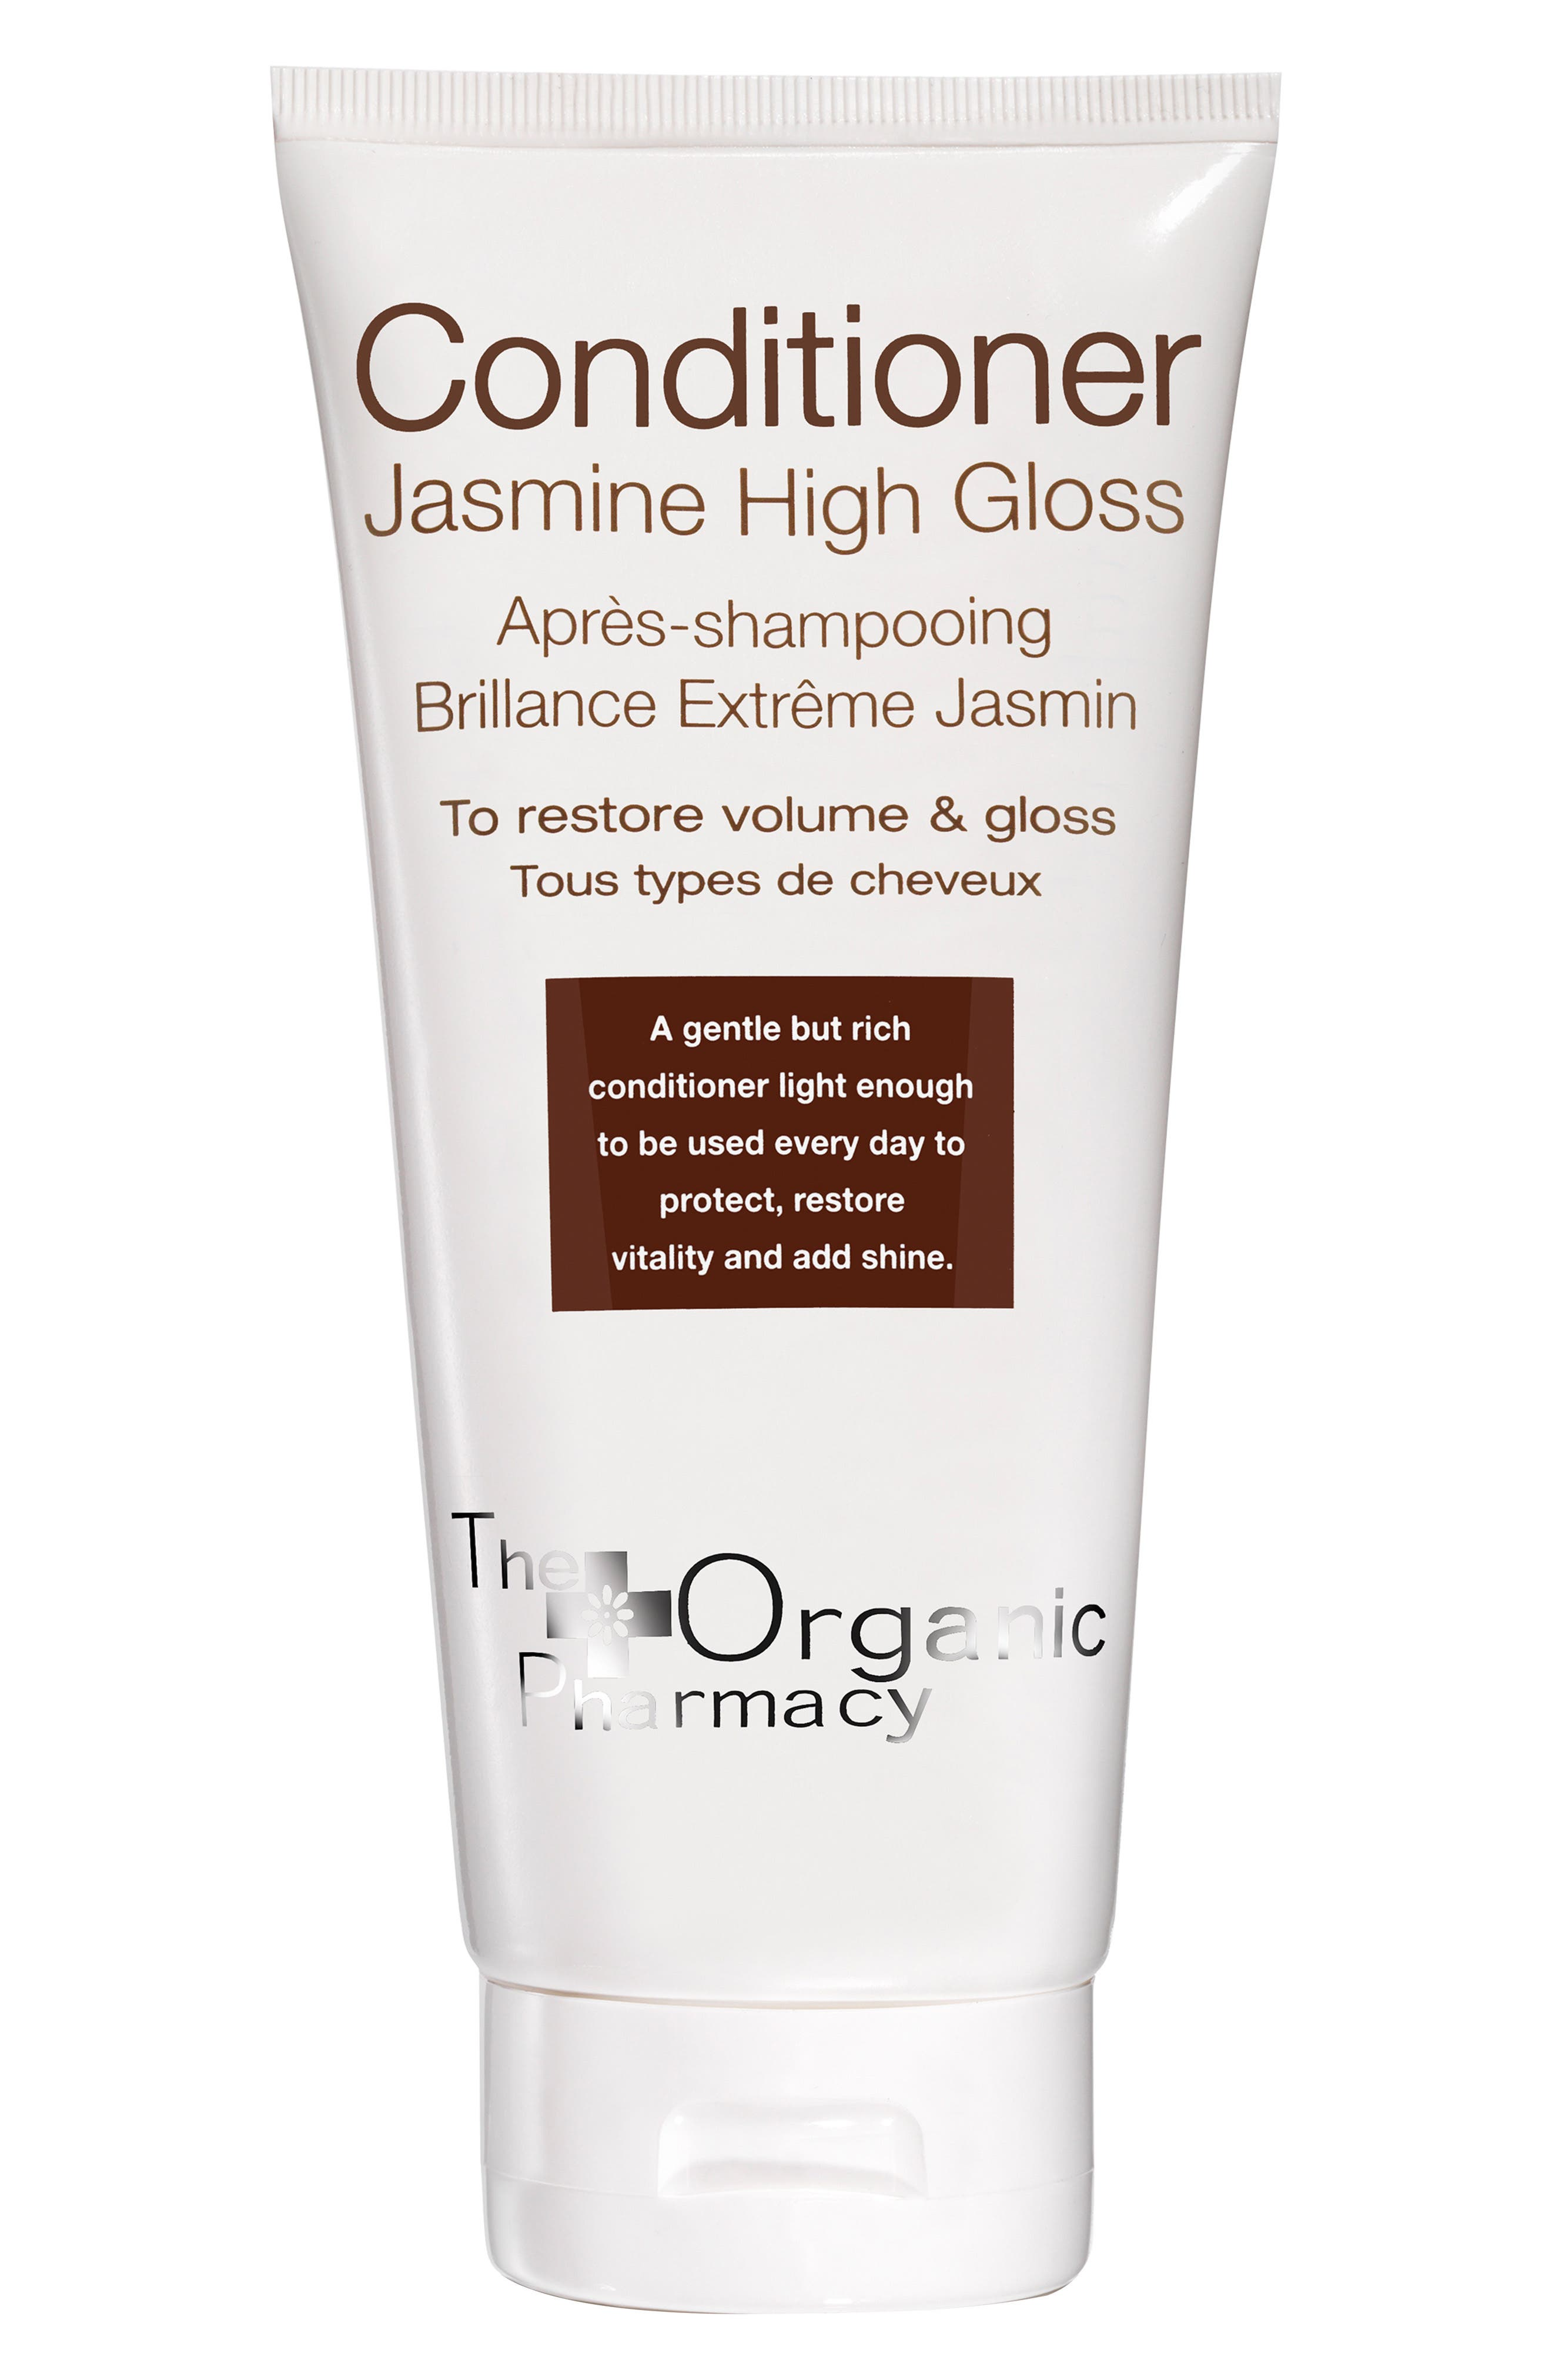 Jasmine High Gloss Conditioner,                             Main thumbnail 1, color,                             NO COLOR